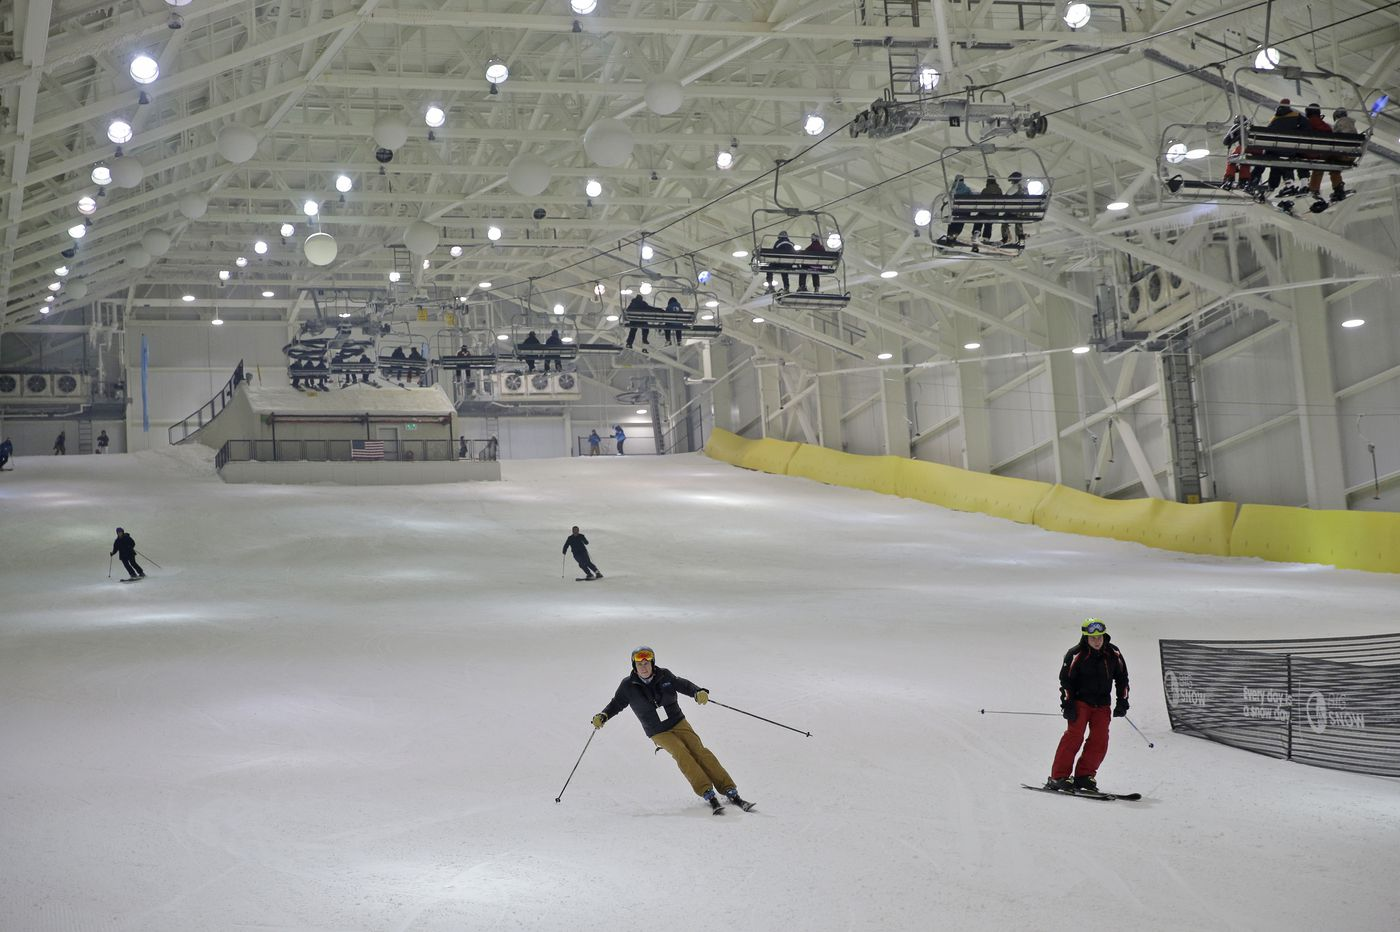 North America's first indoor ski slope opens in Meadowlands mega mall